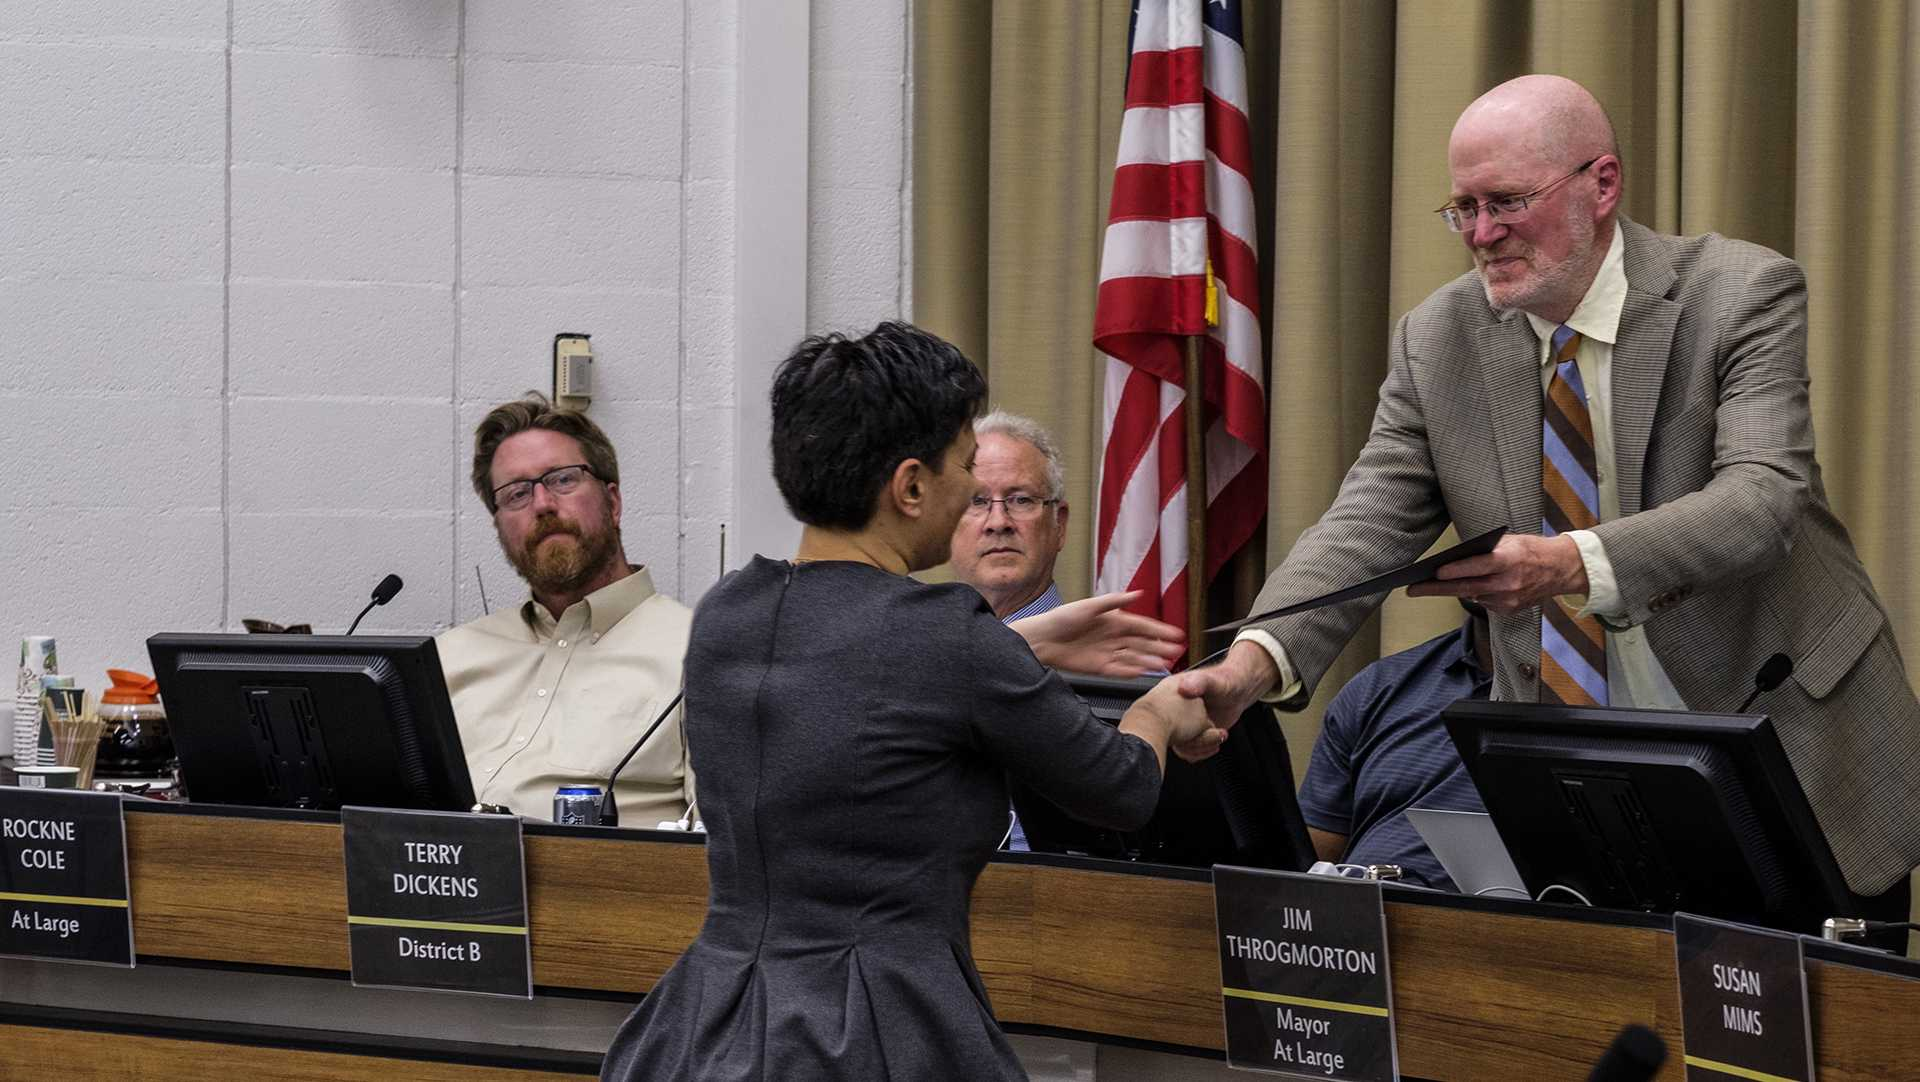 Maria Padron accepts a proclamation on the observance of United Nations Day during a city council meeting on Tuesday, Oct. 17, 2017. (Nick Rohlman/The Daily Iowan)